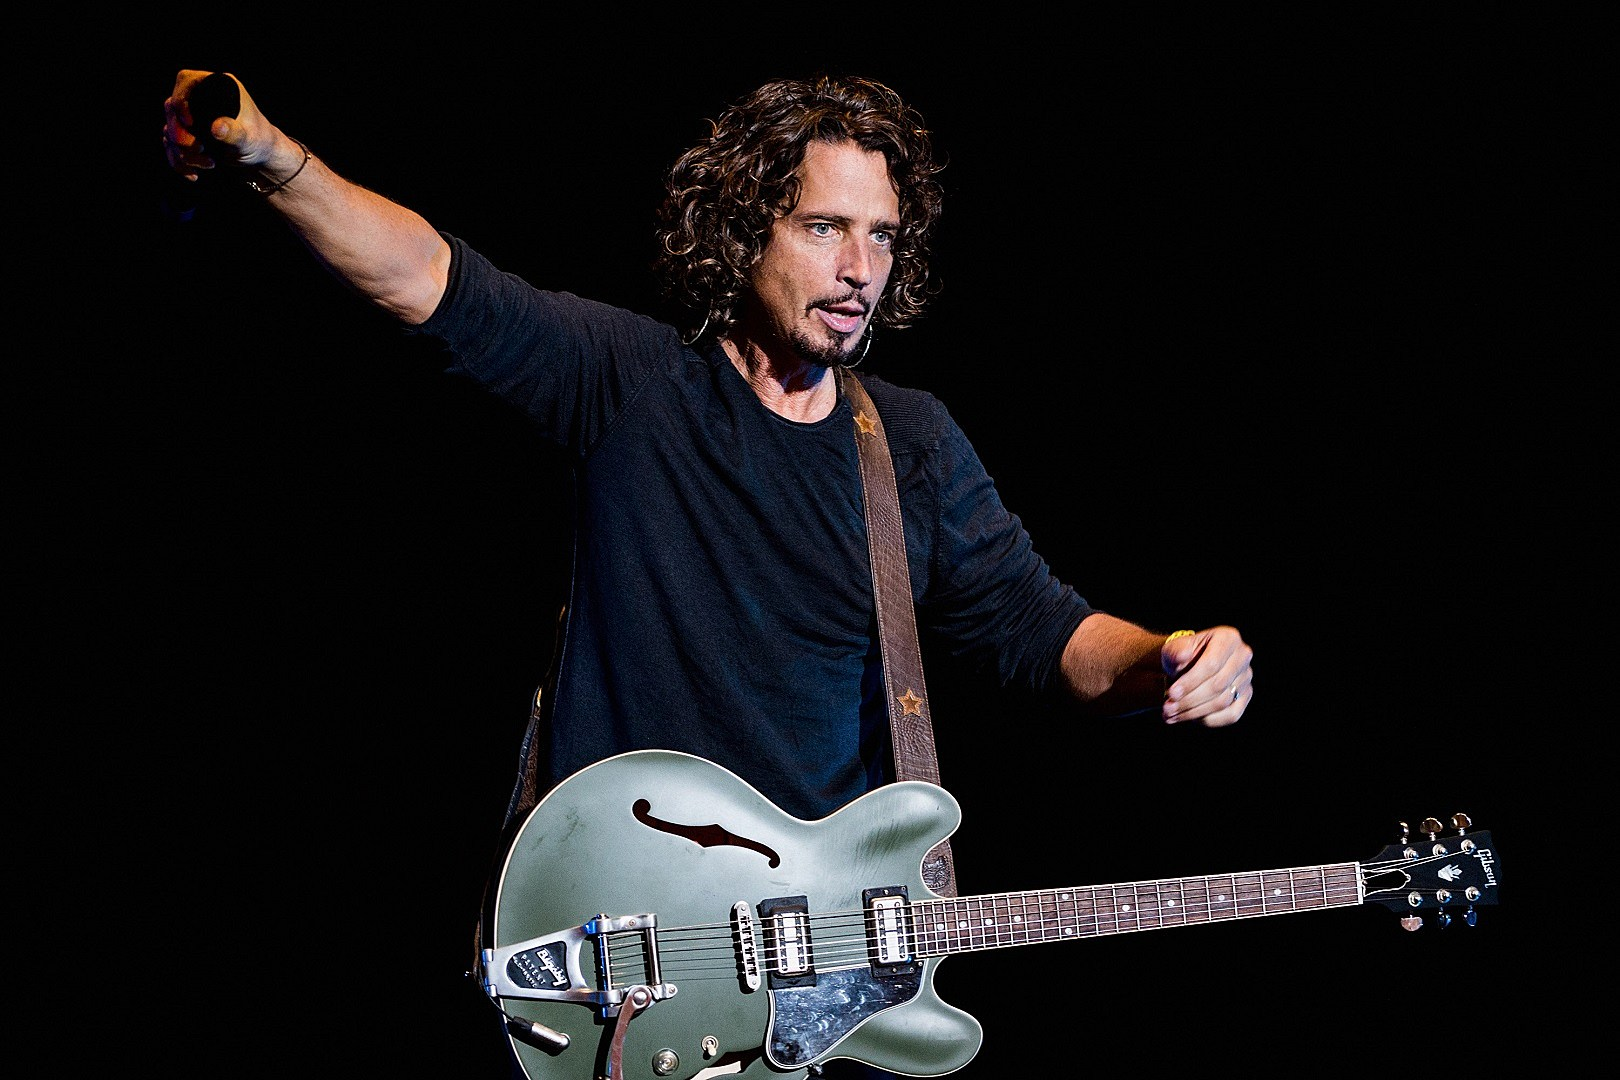 Metallica, Foo Fighters, Soundgarden Members + More Announced for Chris Cornell Tribute Show